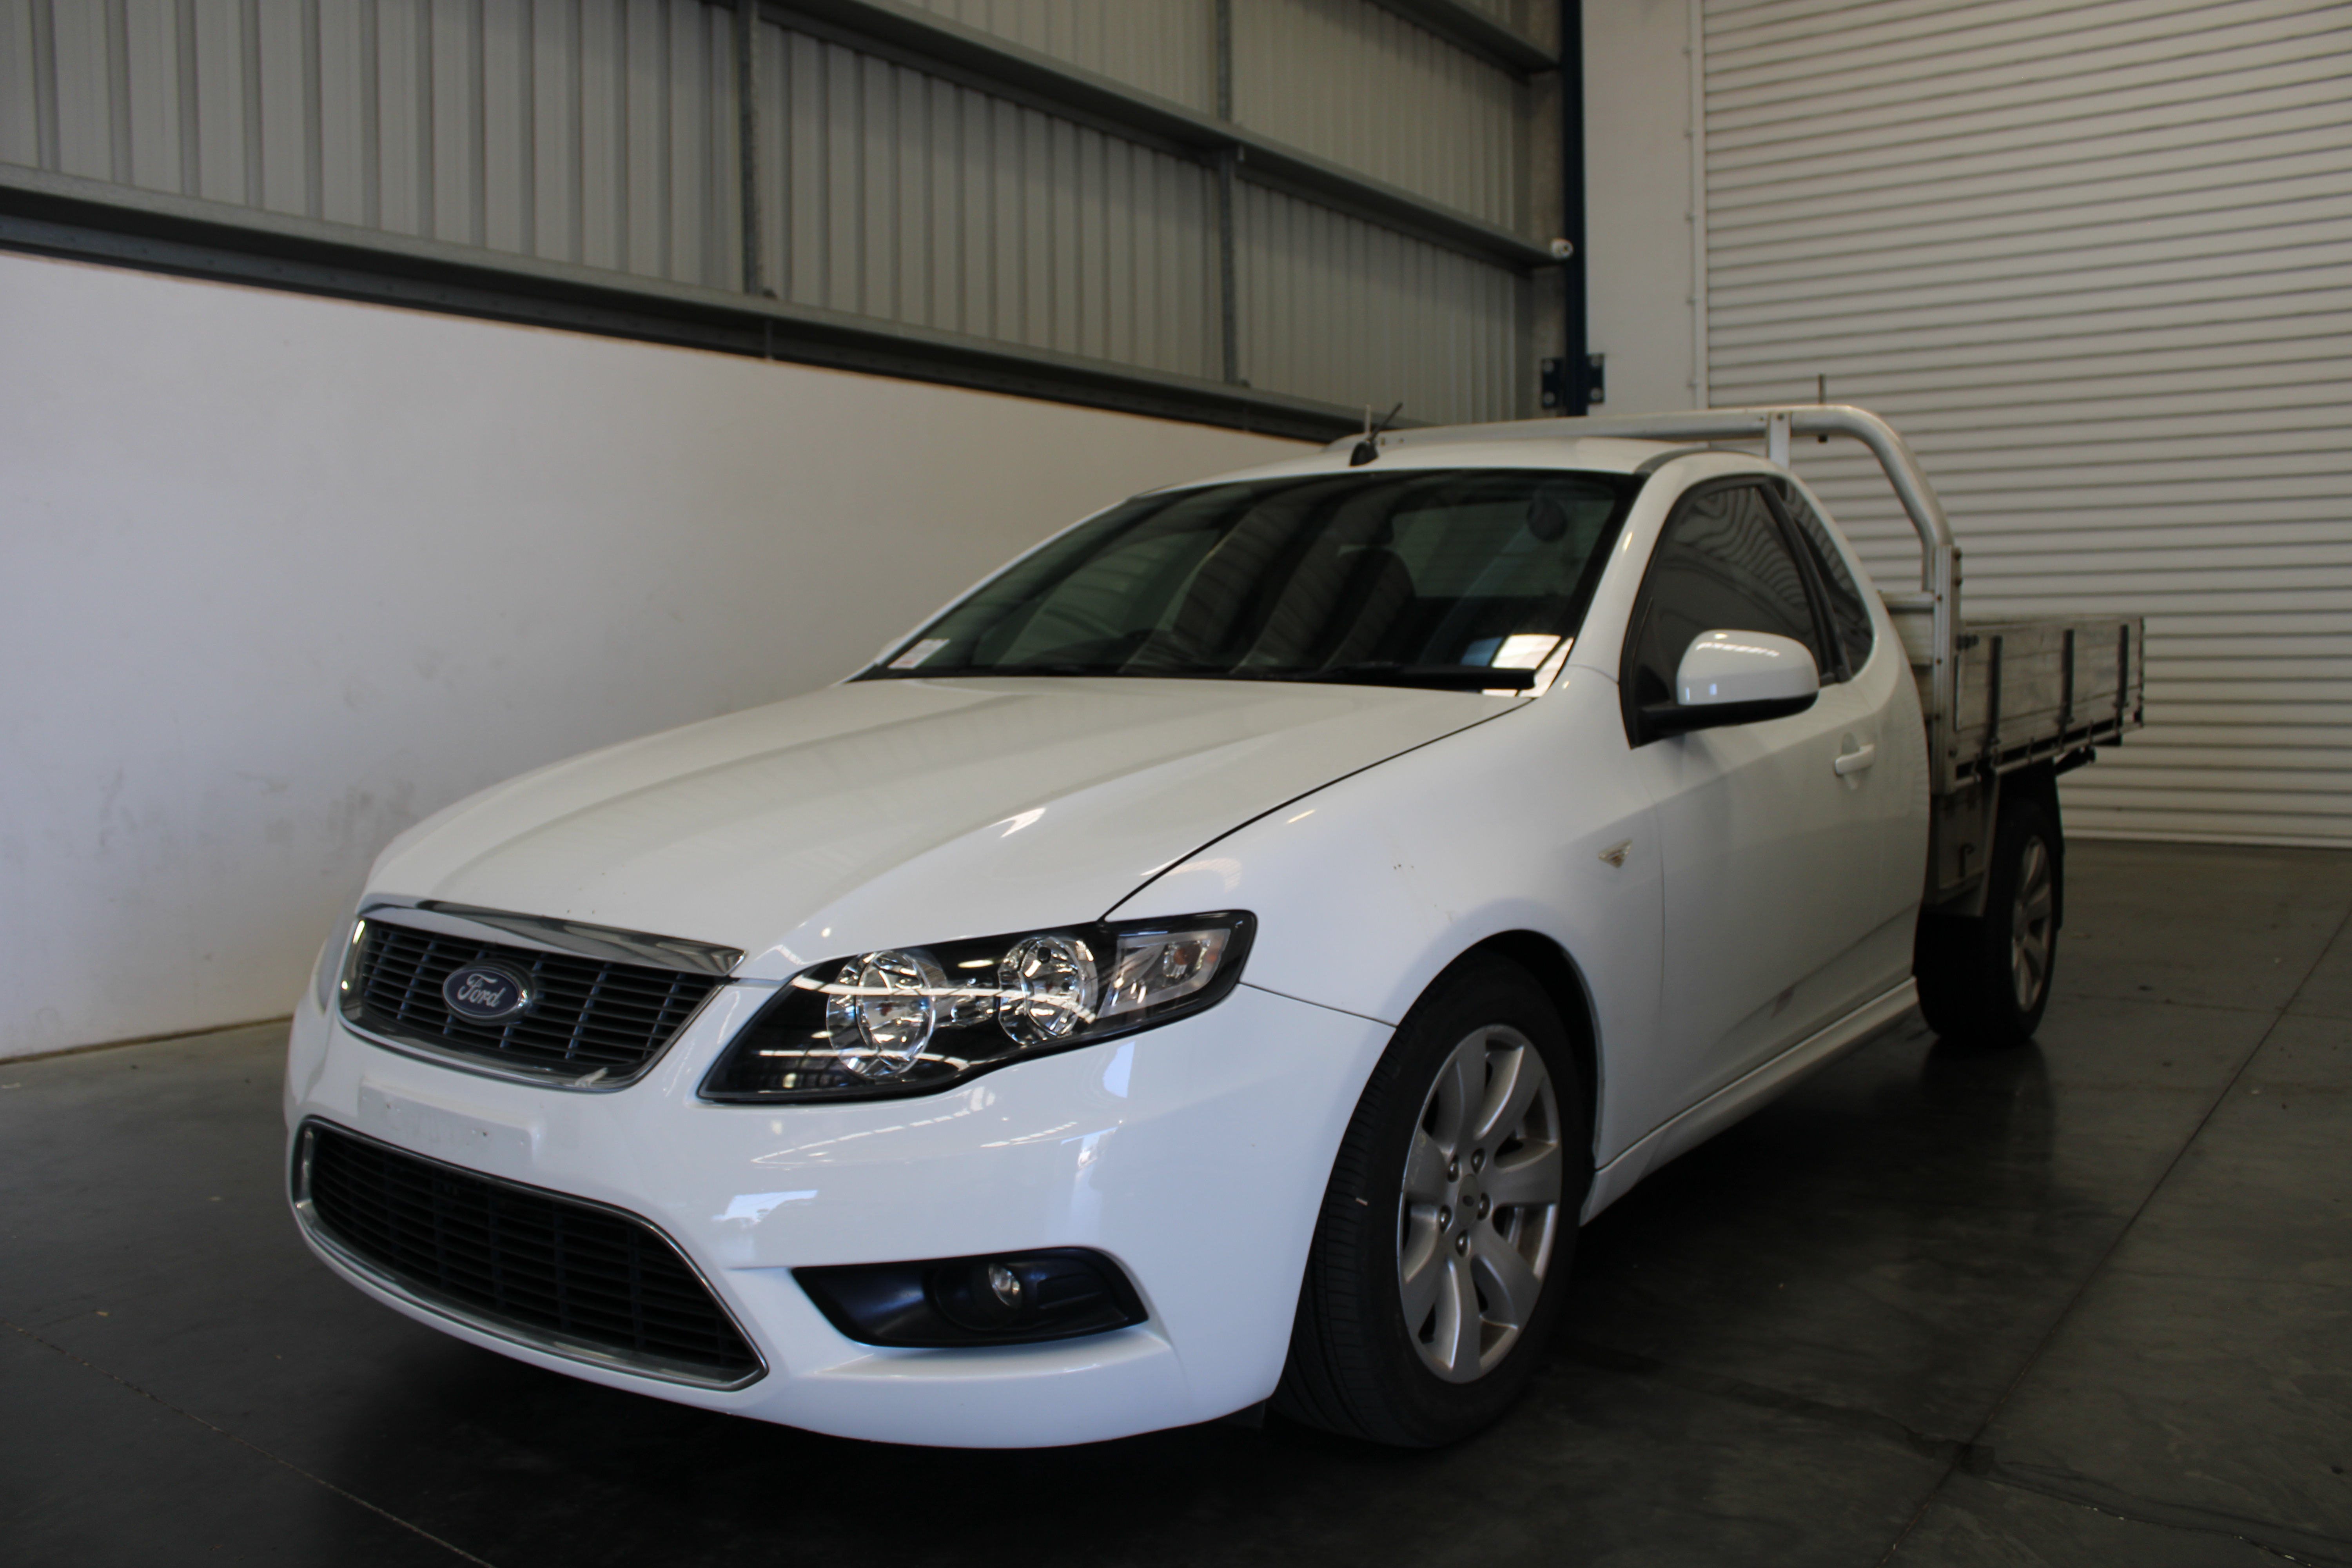 2010 Ford Falcon FG LPG Automatic Cab Chassis (WOVR - Inspected)